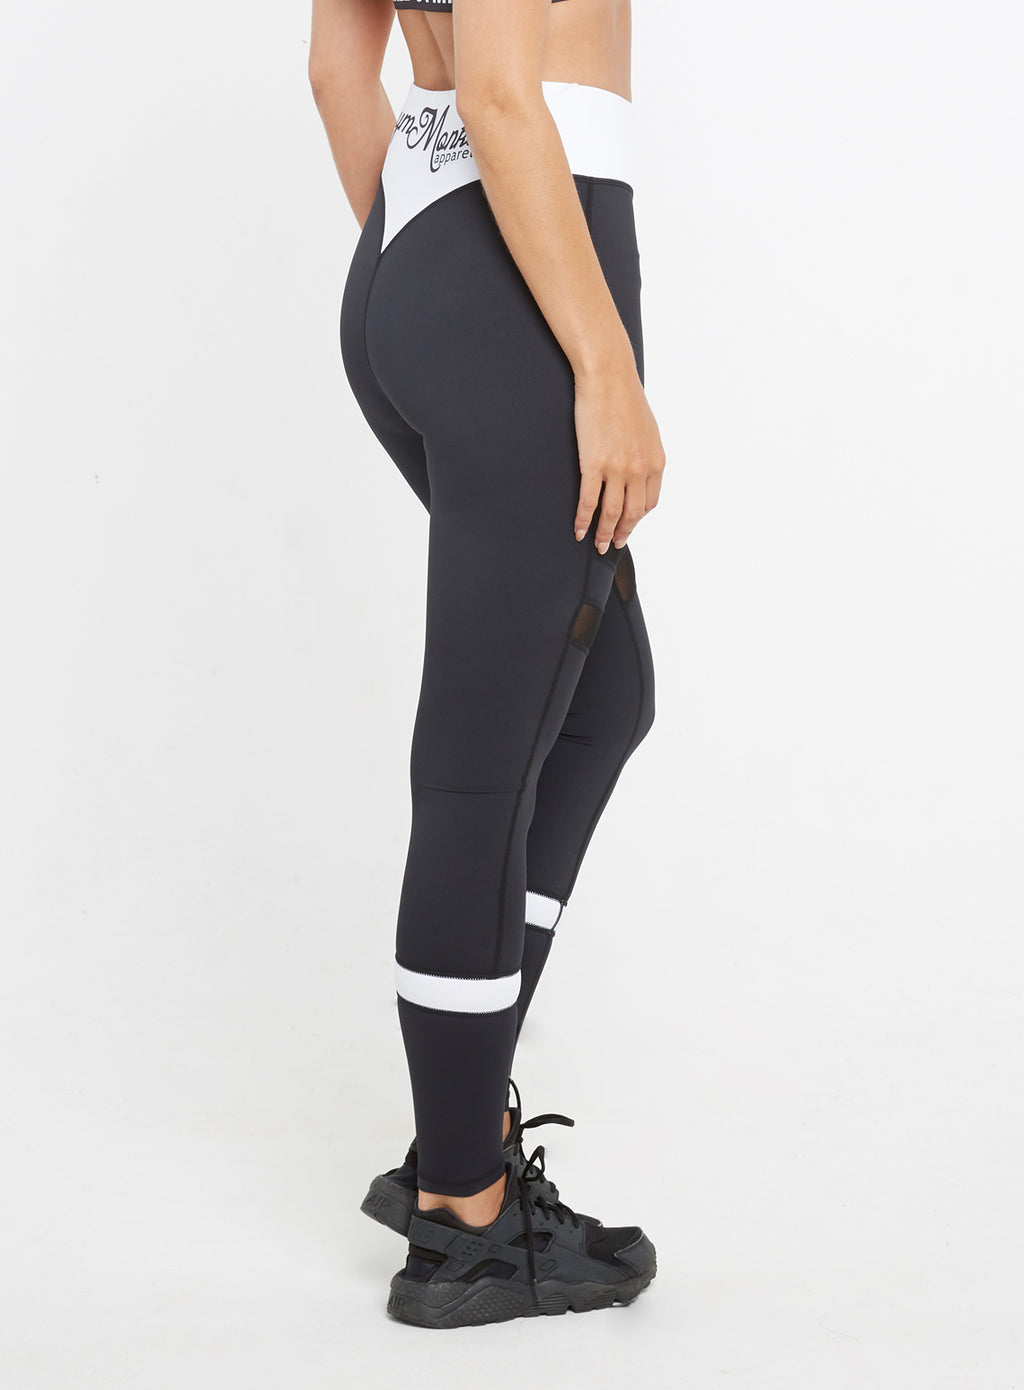 Gym  Monkee - Ladies Black and White Leggings RIGHT